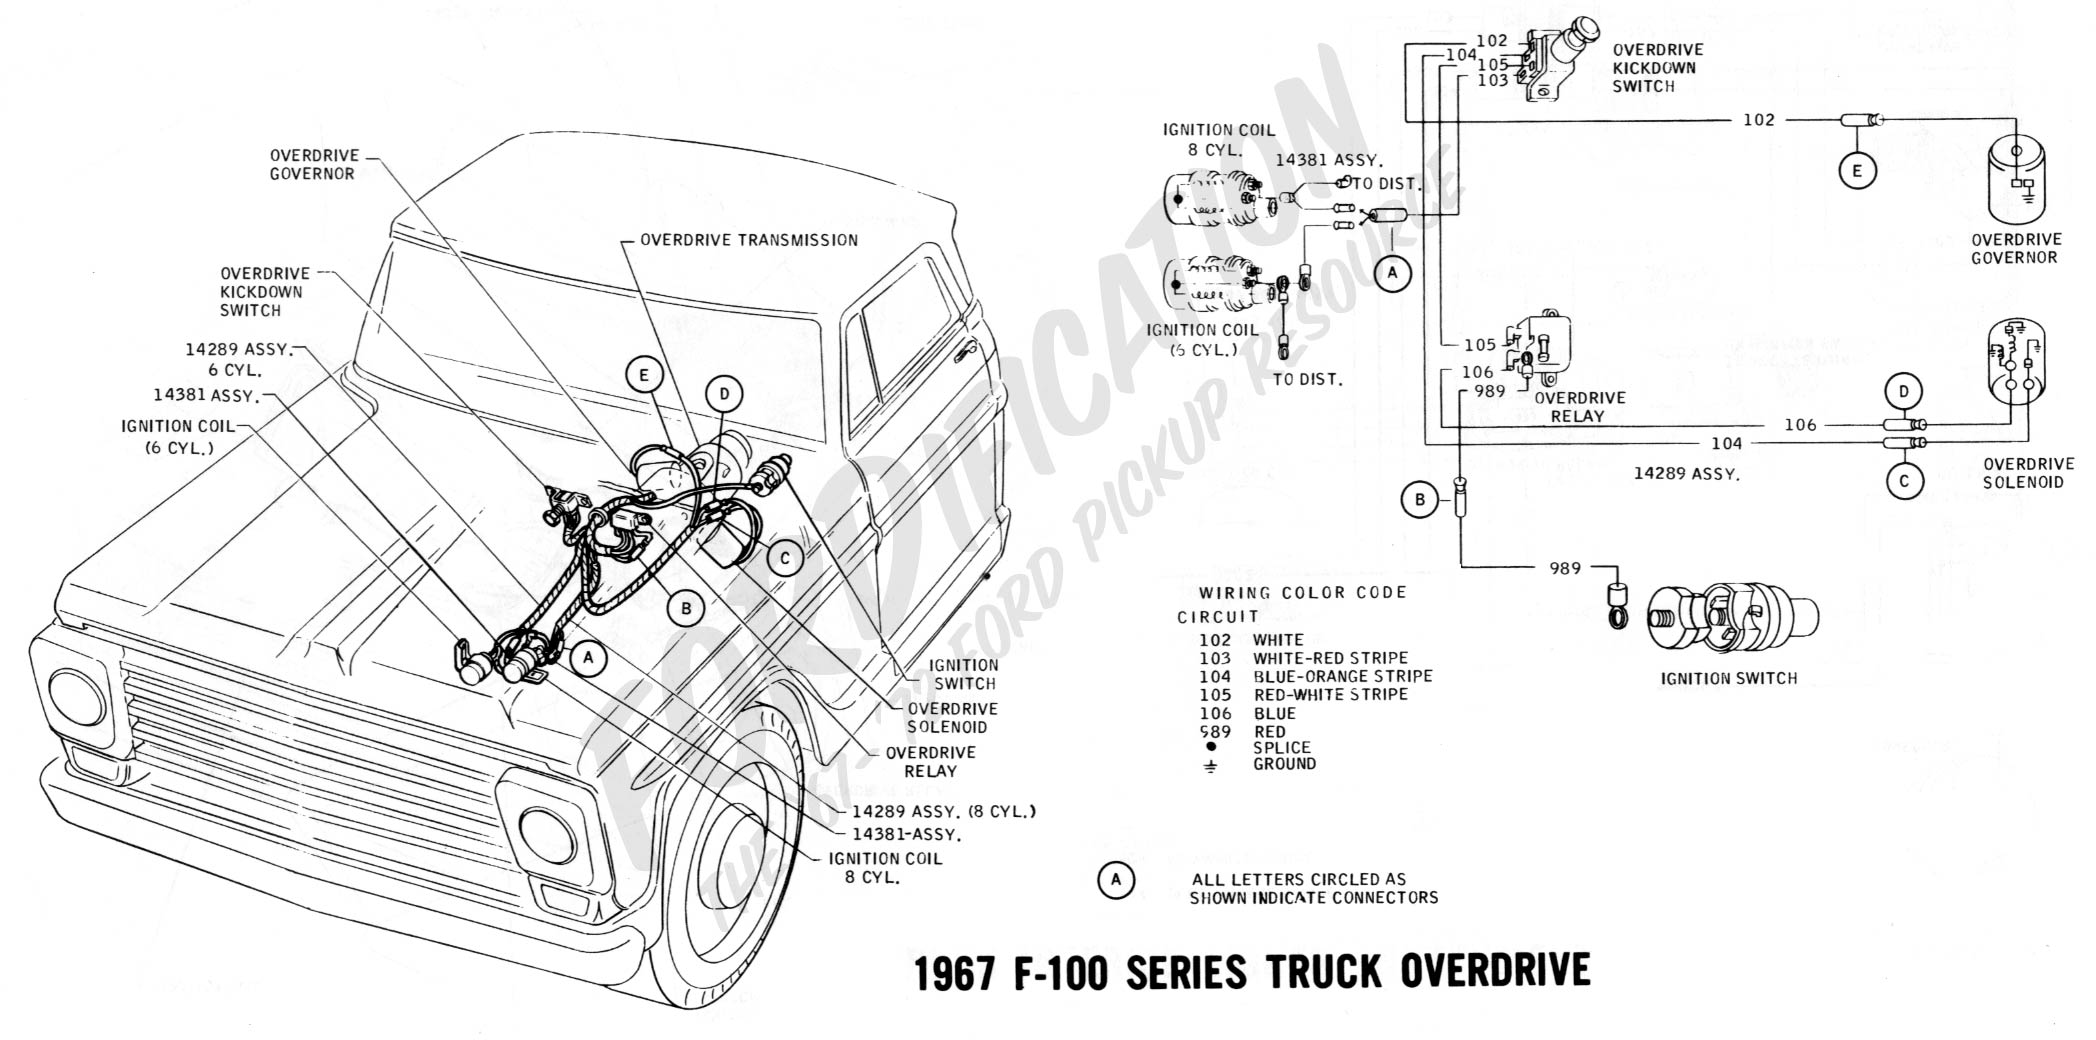 73 ford f100 coil wiring diagram wiring diagram database 1966 f-100 truck brake light wiring diagram ford truck technical drawings and schematics section h wiring 1980 ford f100 wiring diagram 1967 f